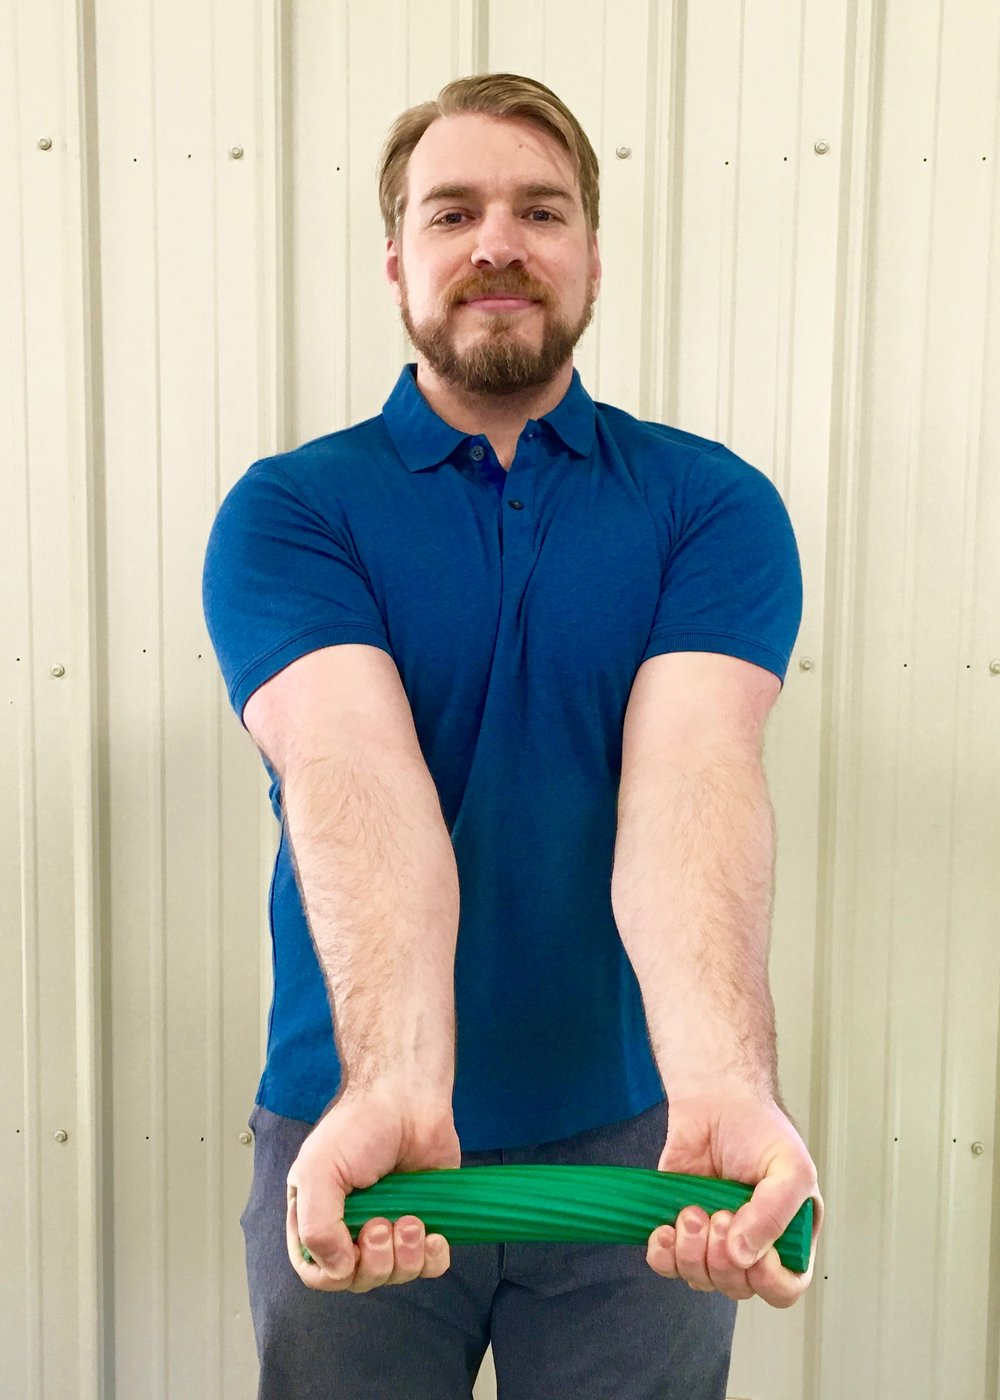 Golfer's Elbow 5 - Slowly allow the wrist of your injured arm to extend while squeezing the bar. Reset your grip for each rep.